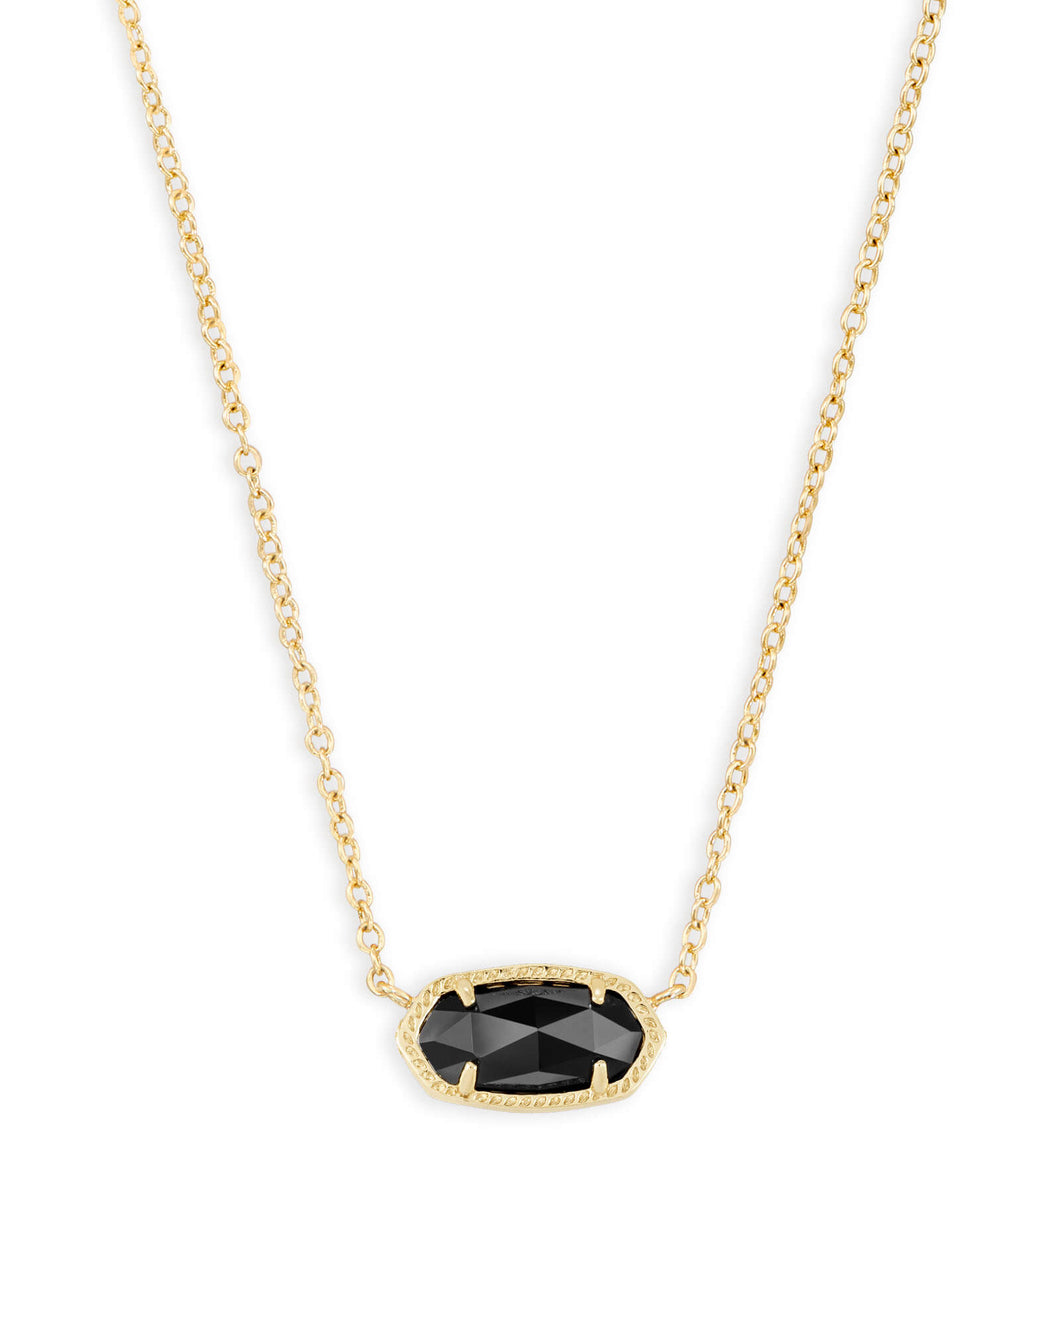 Kendra Scott Elisa Gold Pendant Necklace in Black